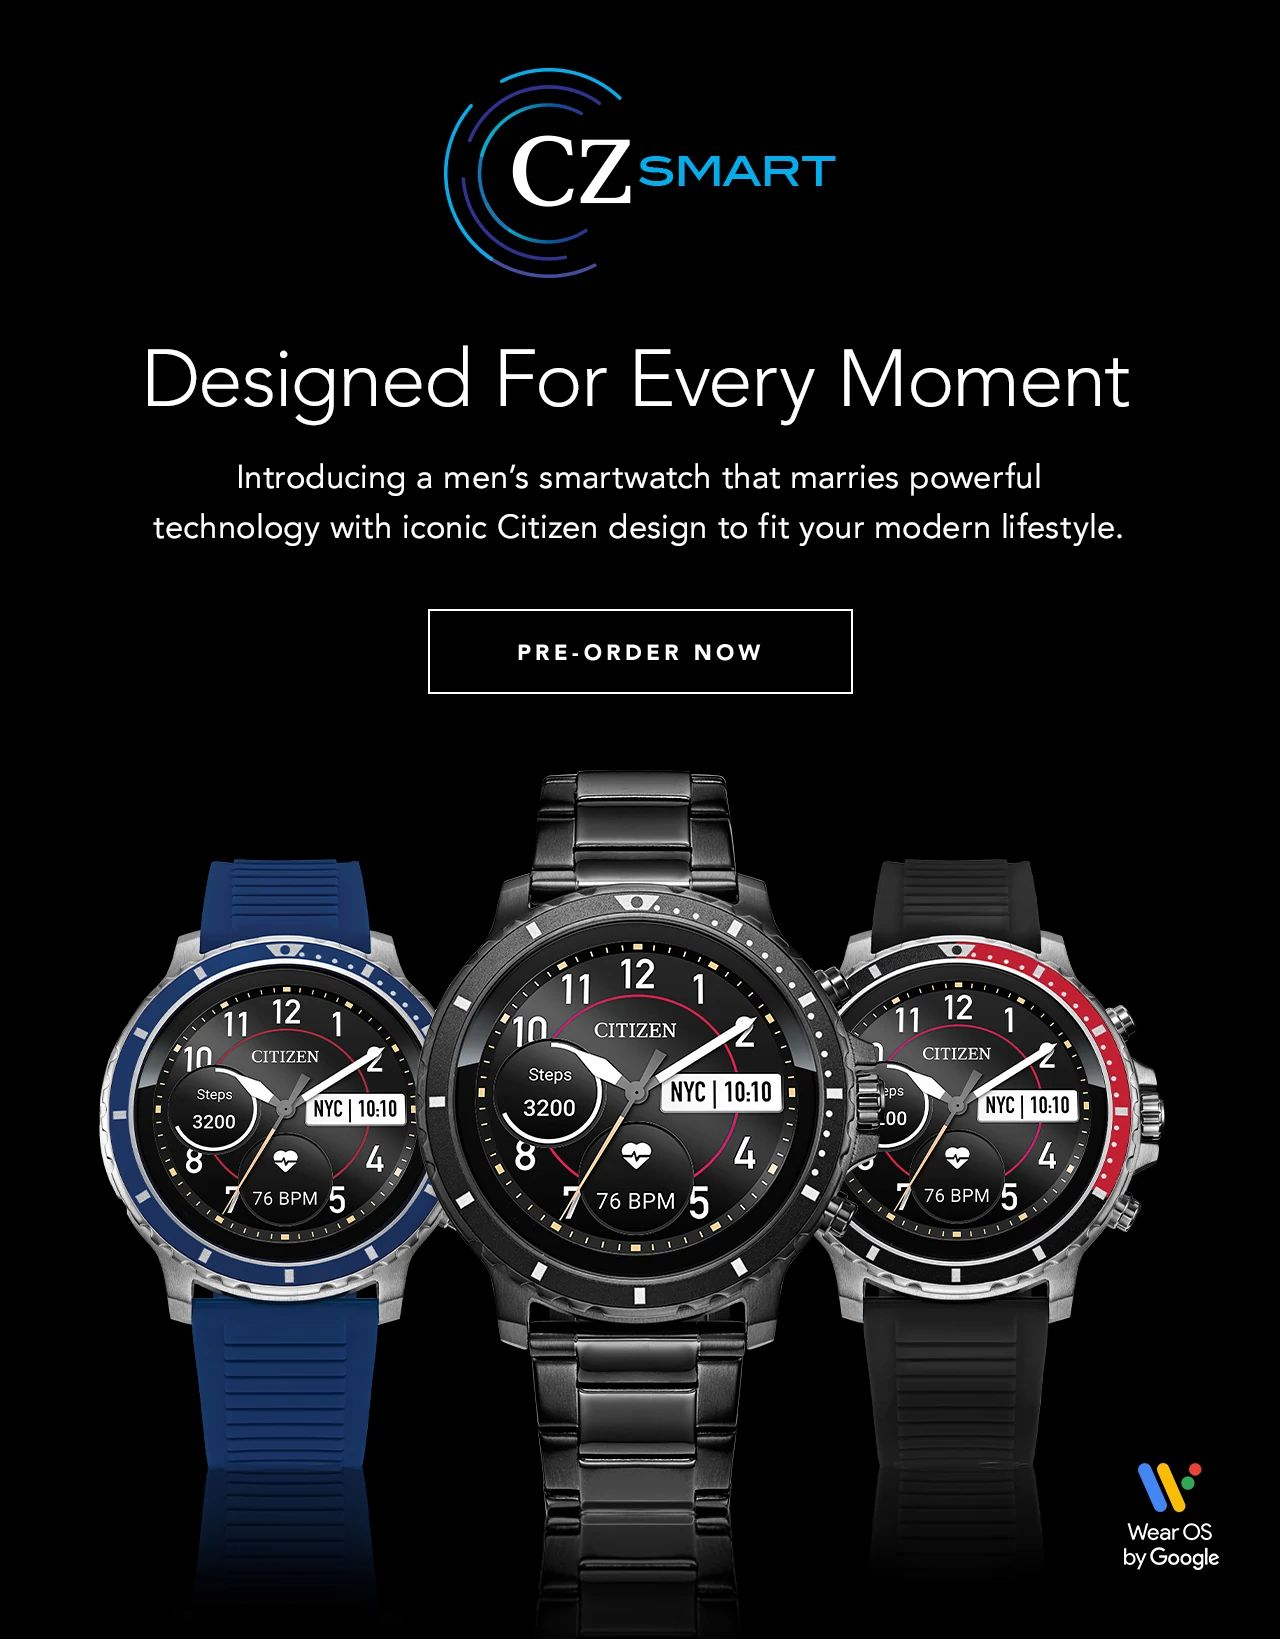 CZ Smart - Designed For Every Moment: Introducing a men's smartwatch that marries powerful technology with iconic Citizen design to fit your modern lifestyle. PRE-ORDER NOW